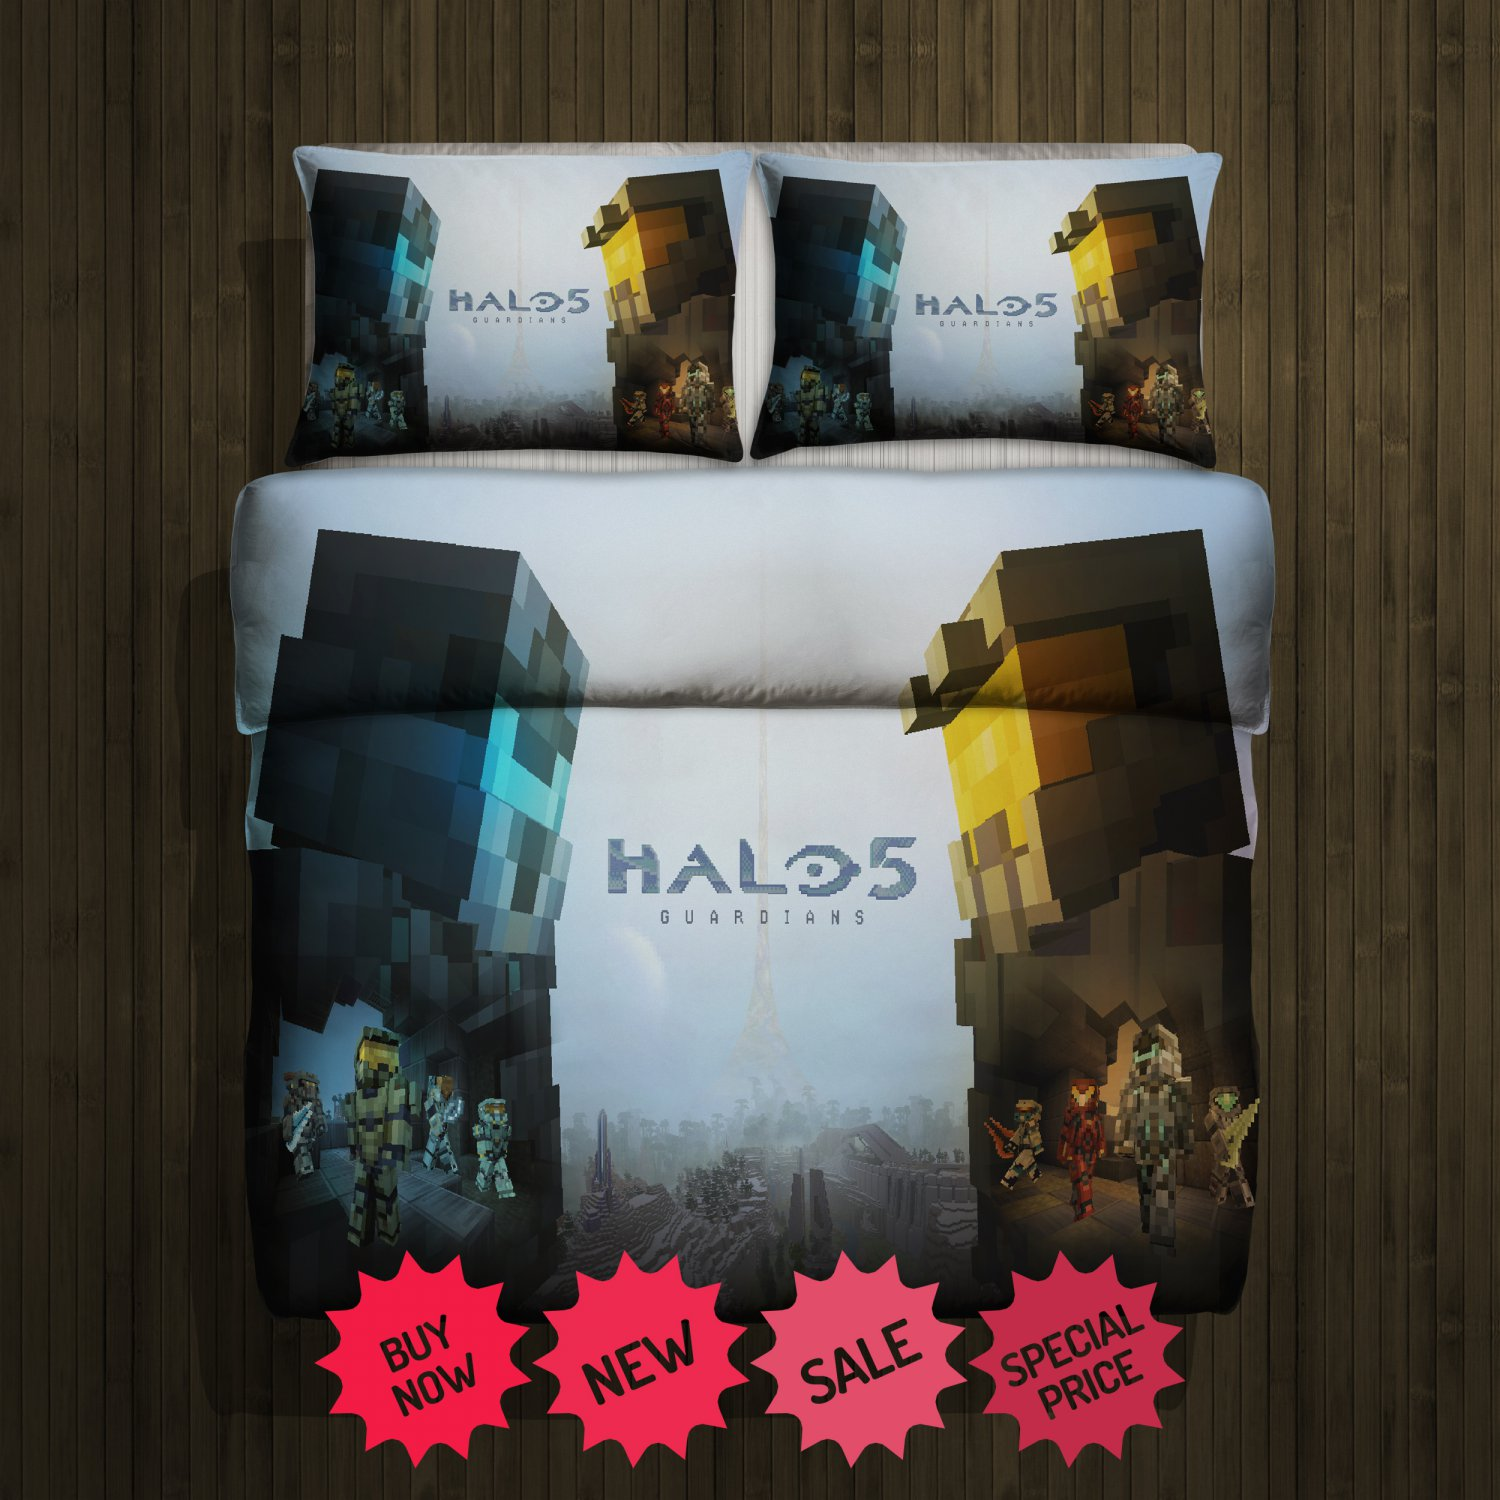 Halo 5 Blanket Large & 2 Pillow Cases #85700294,85700297(2)